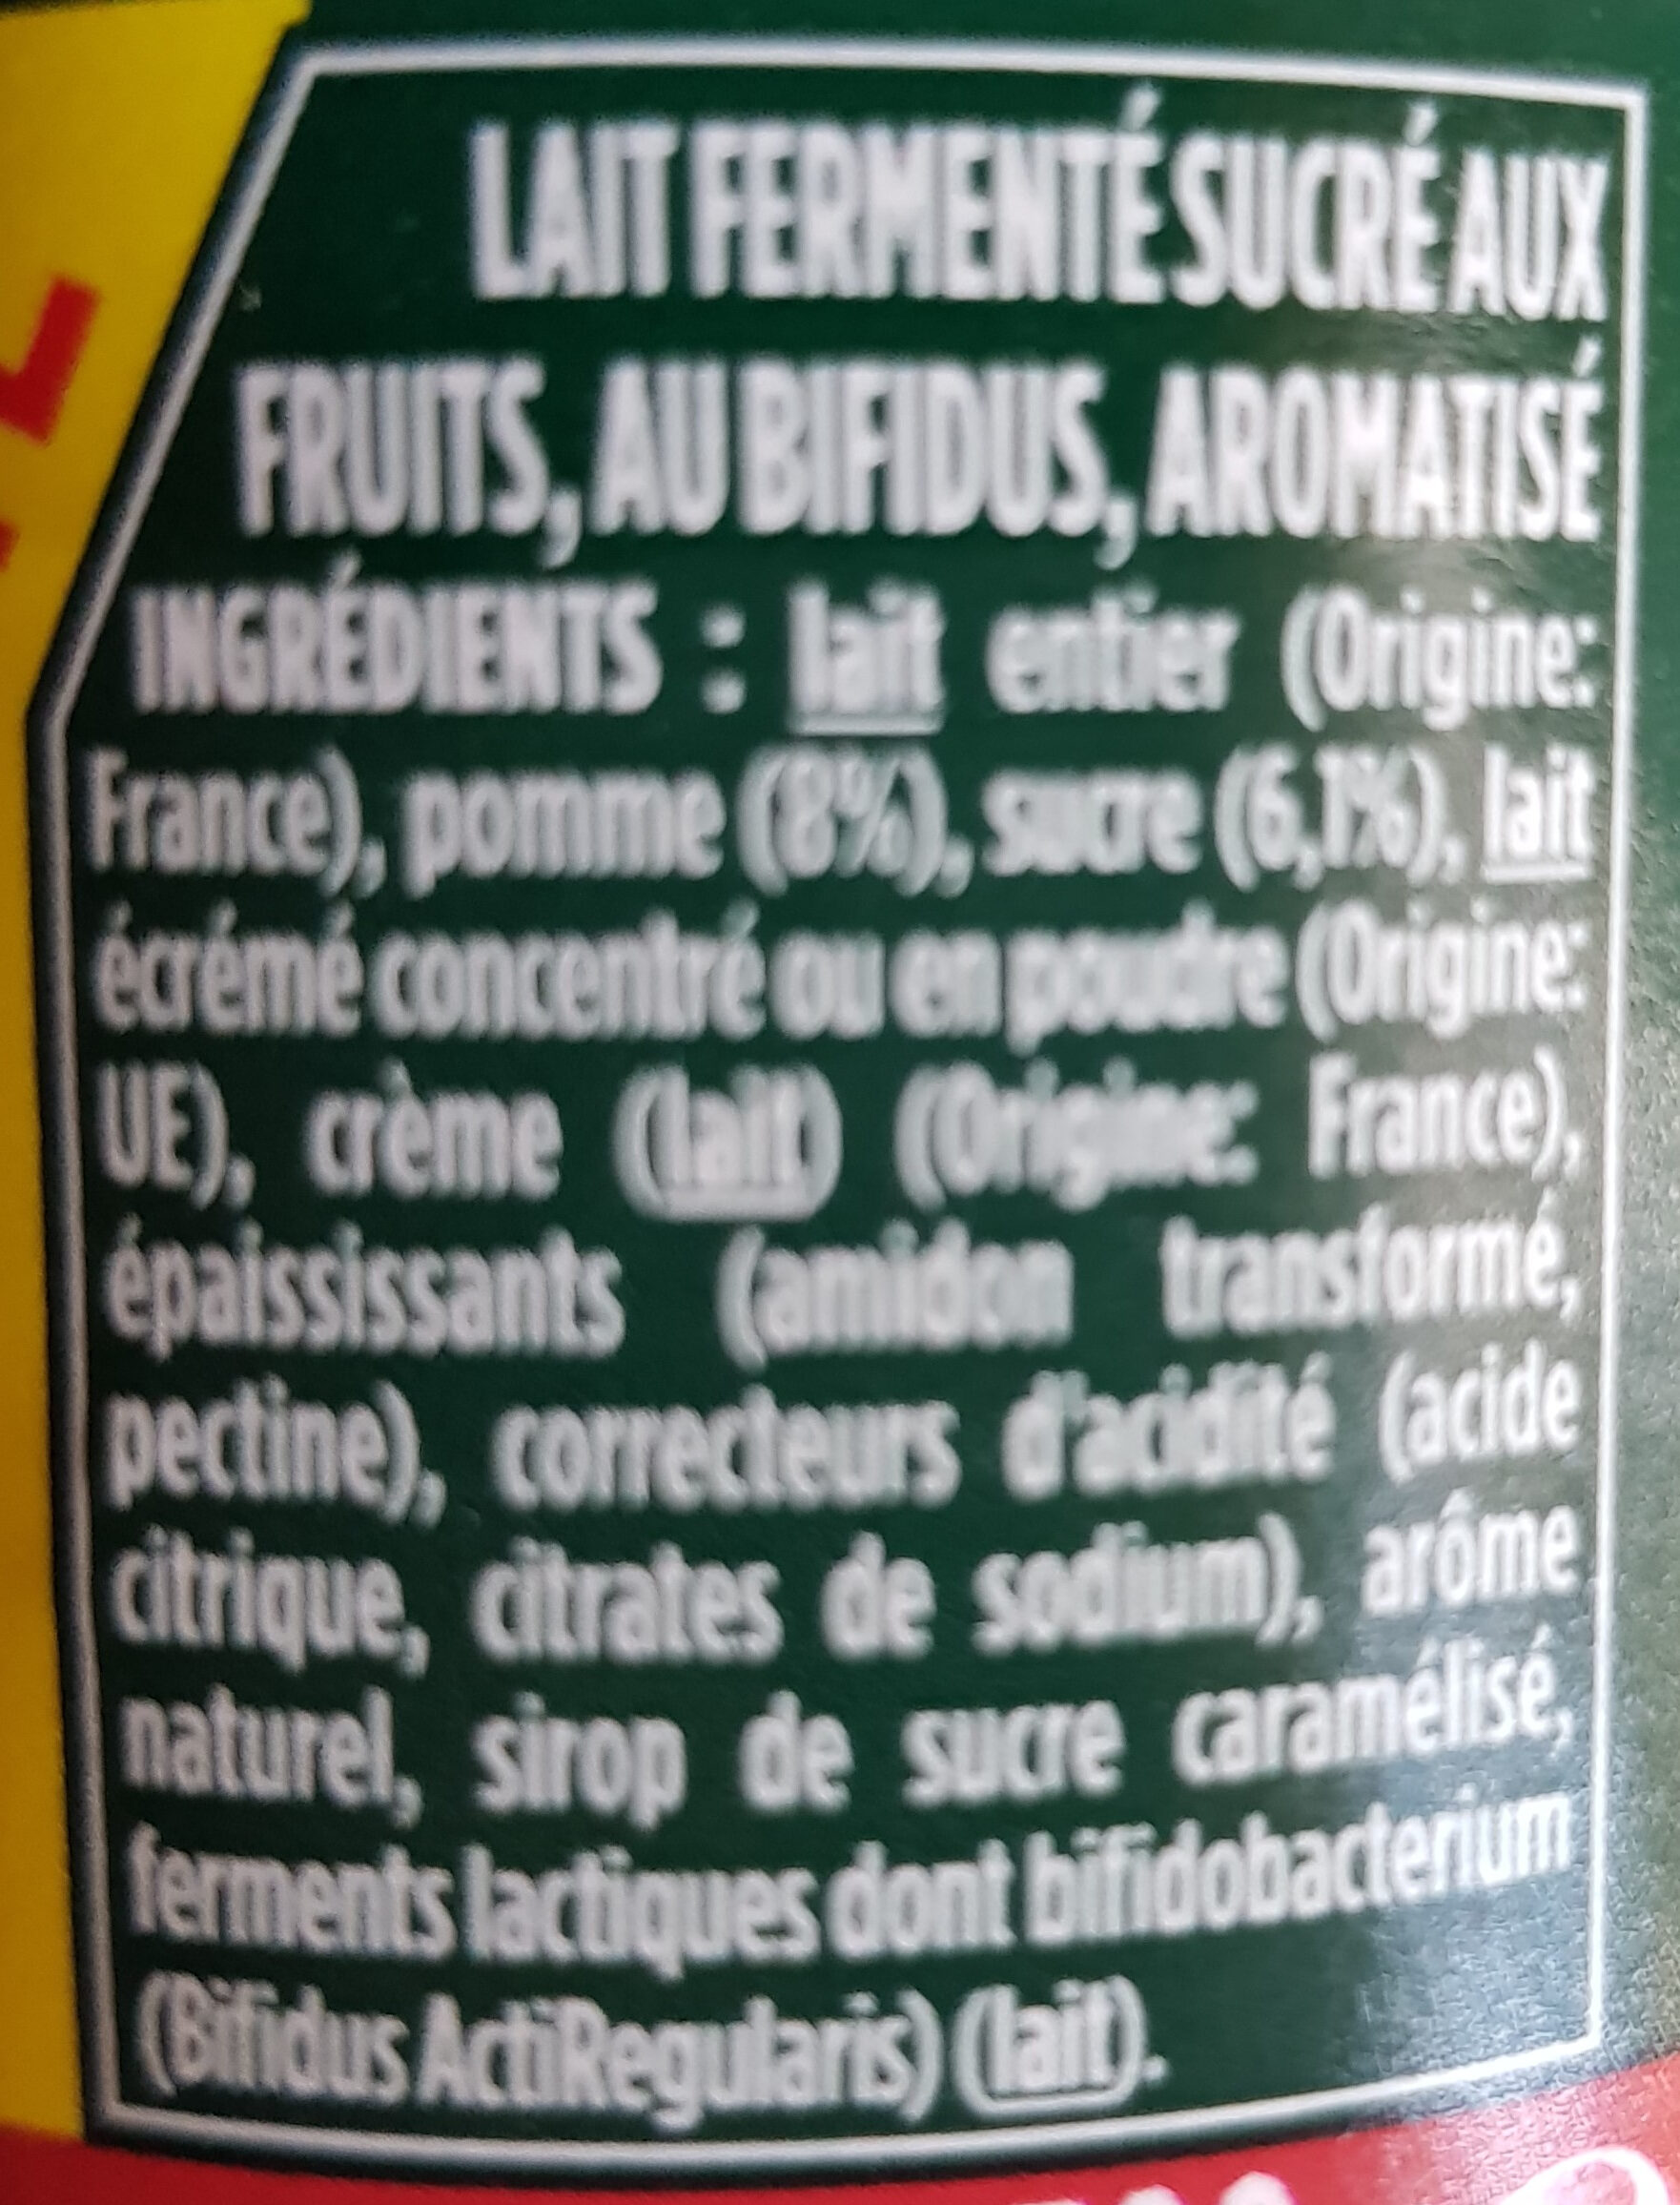 Yaourt pomme - Ingredients